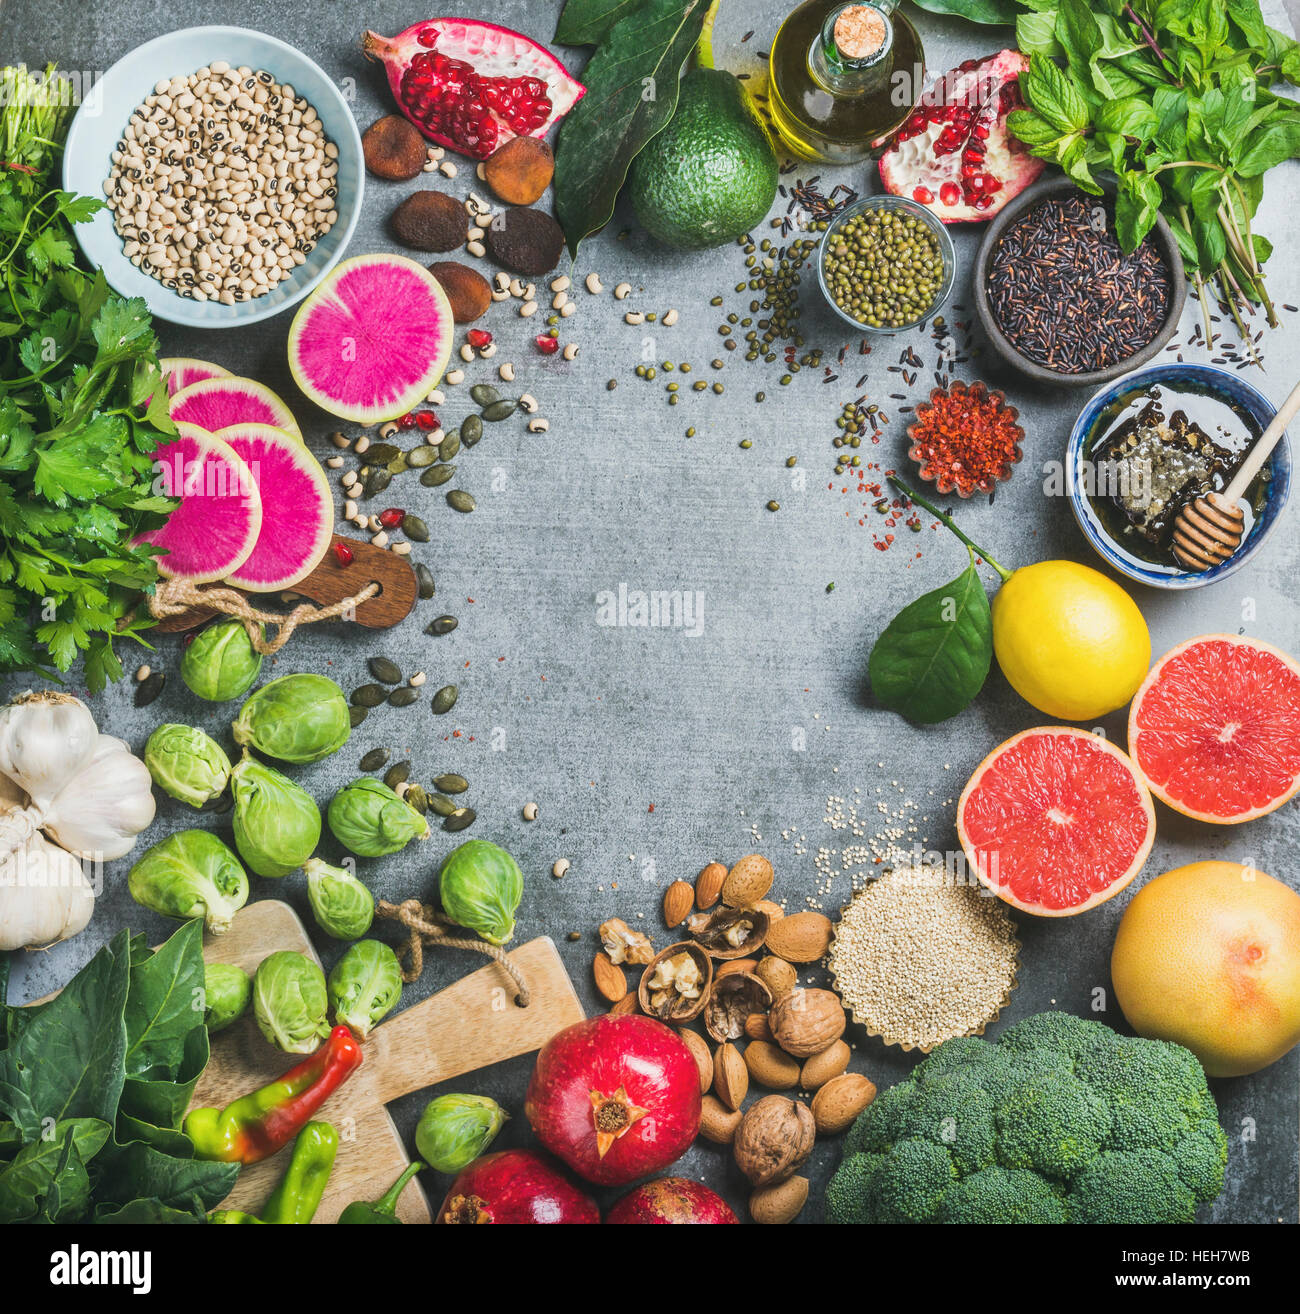 Clean eating concept. Variety of vegetables, fruit, seeds, cereals, beans, spices, superfoods, herbs, condiment Stock Photo